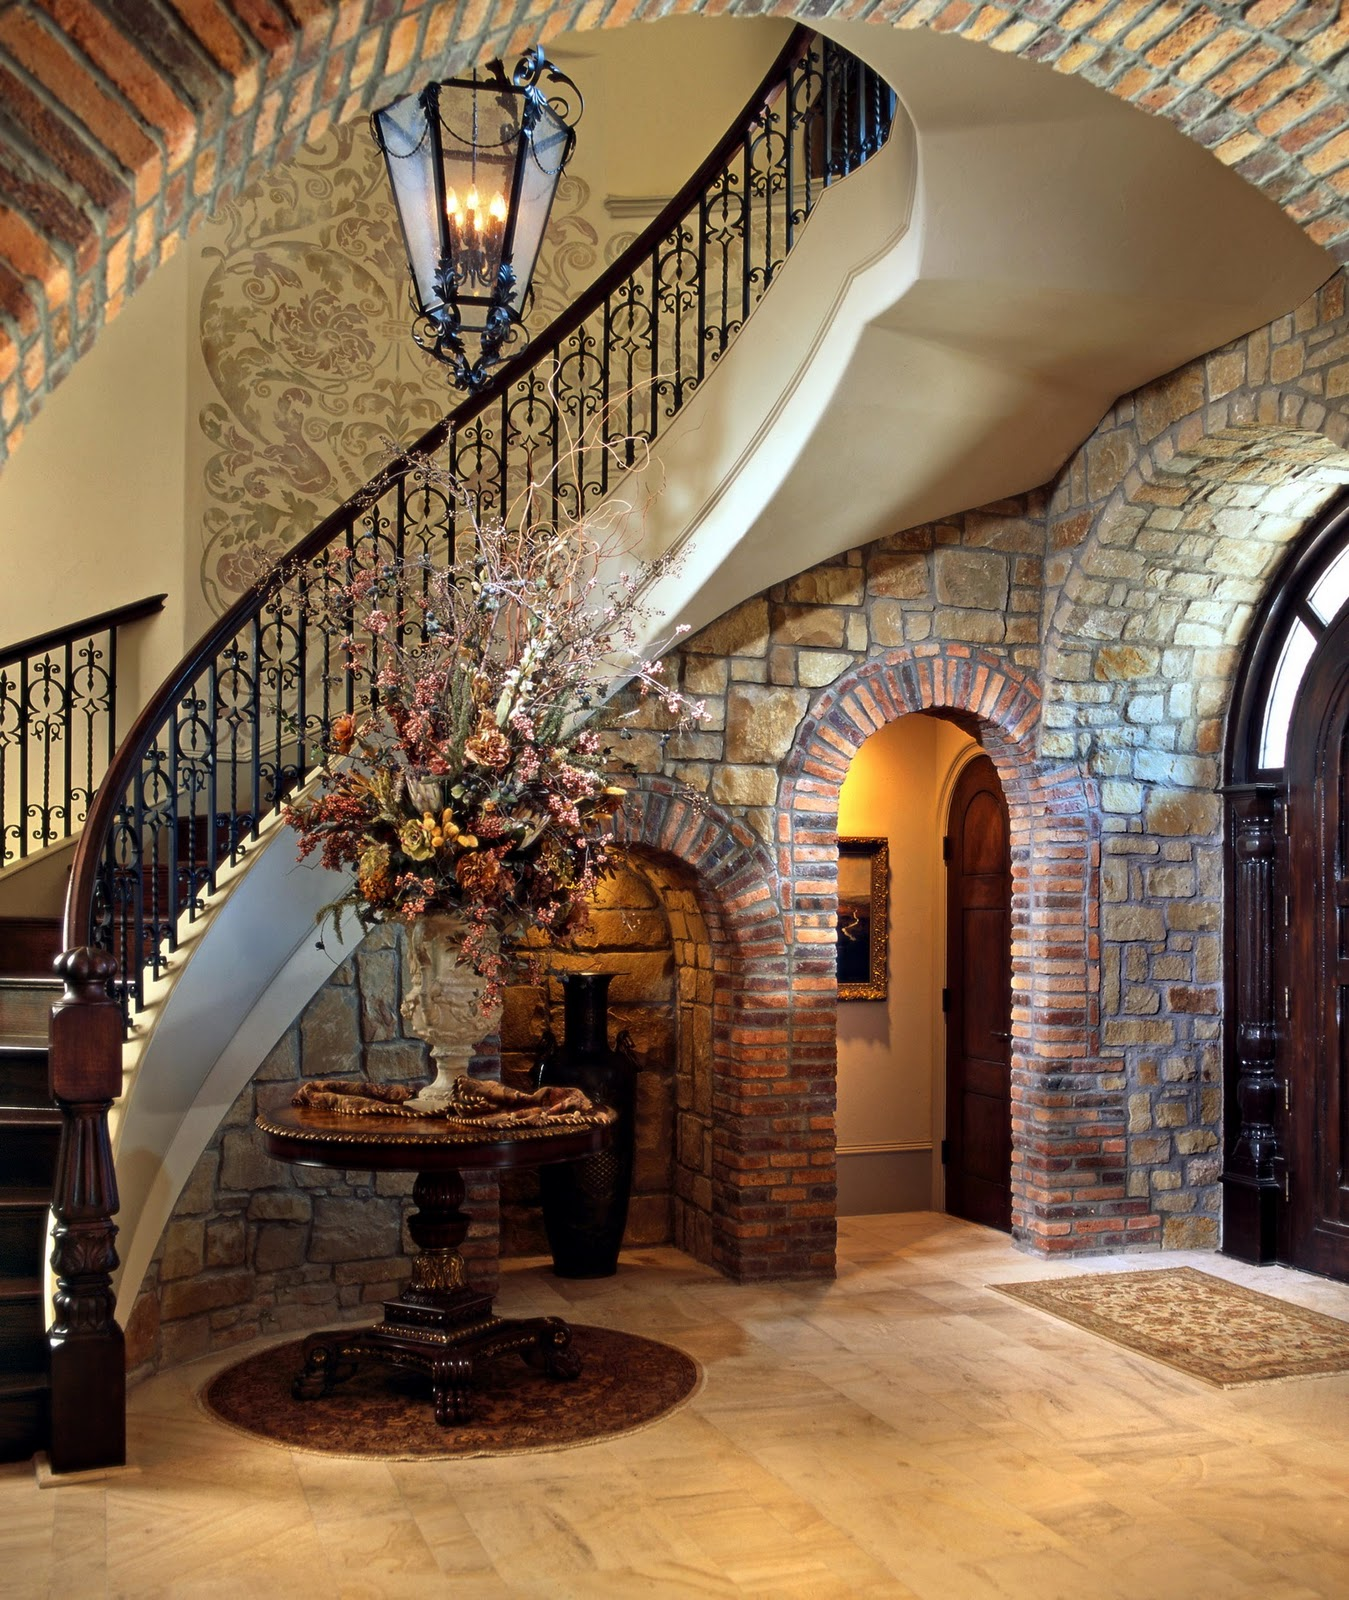 Interior Design Ideas For Home: Lomonaco's Iron Concepts & Home Decor: Tuscan Curved Stairway